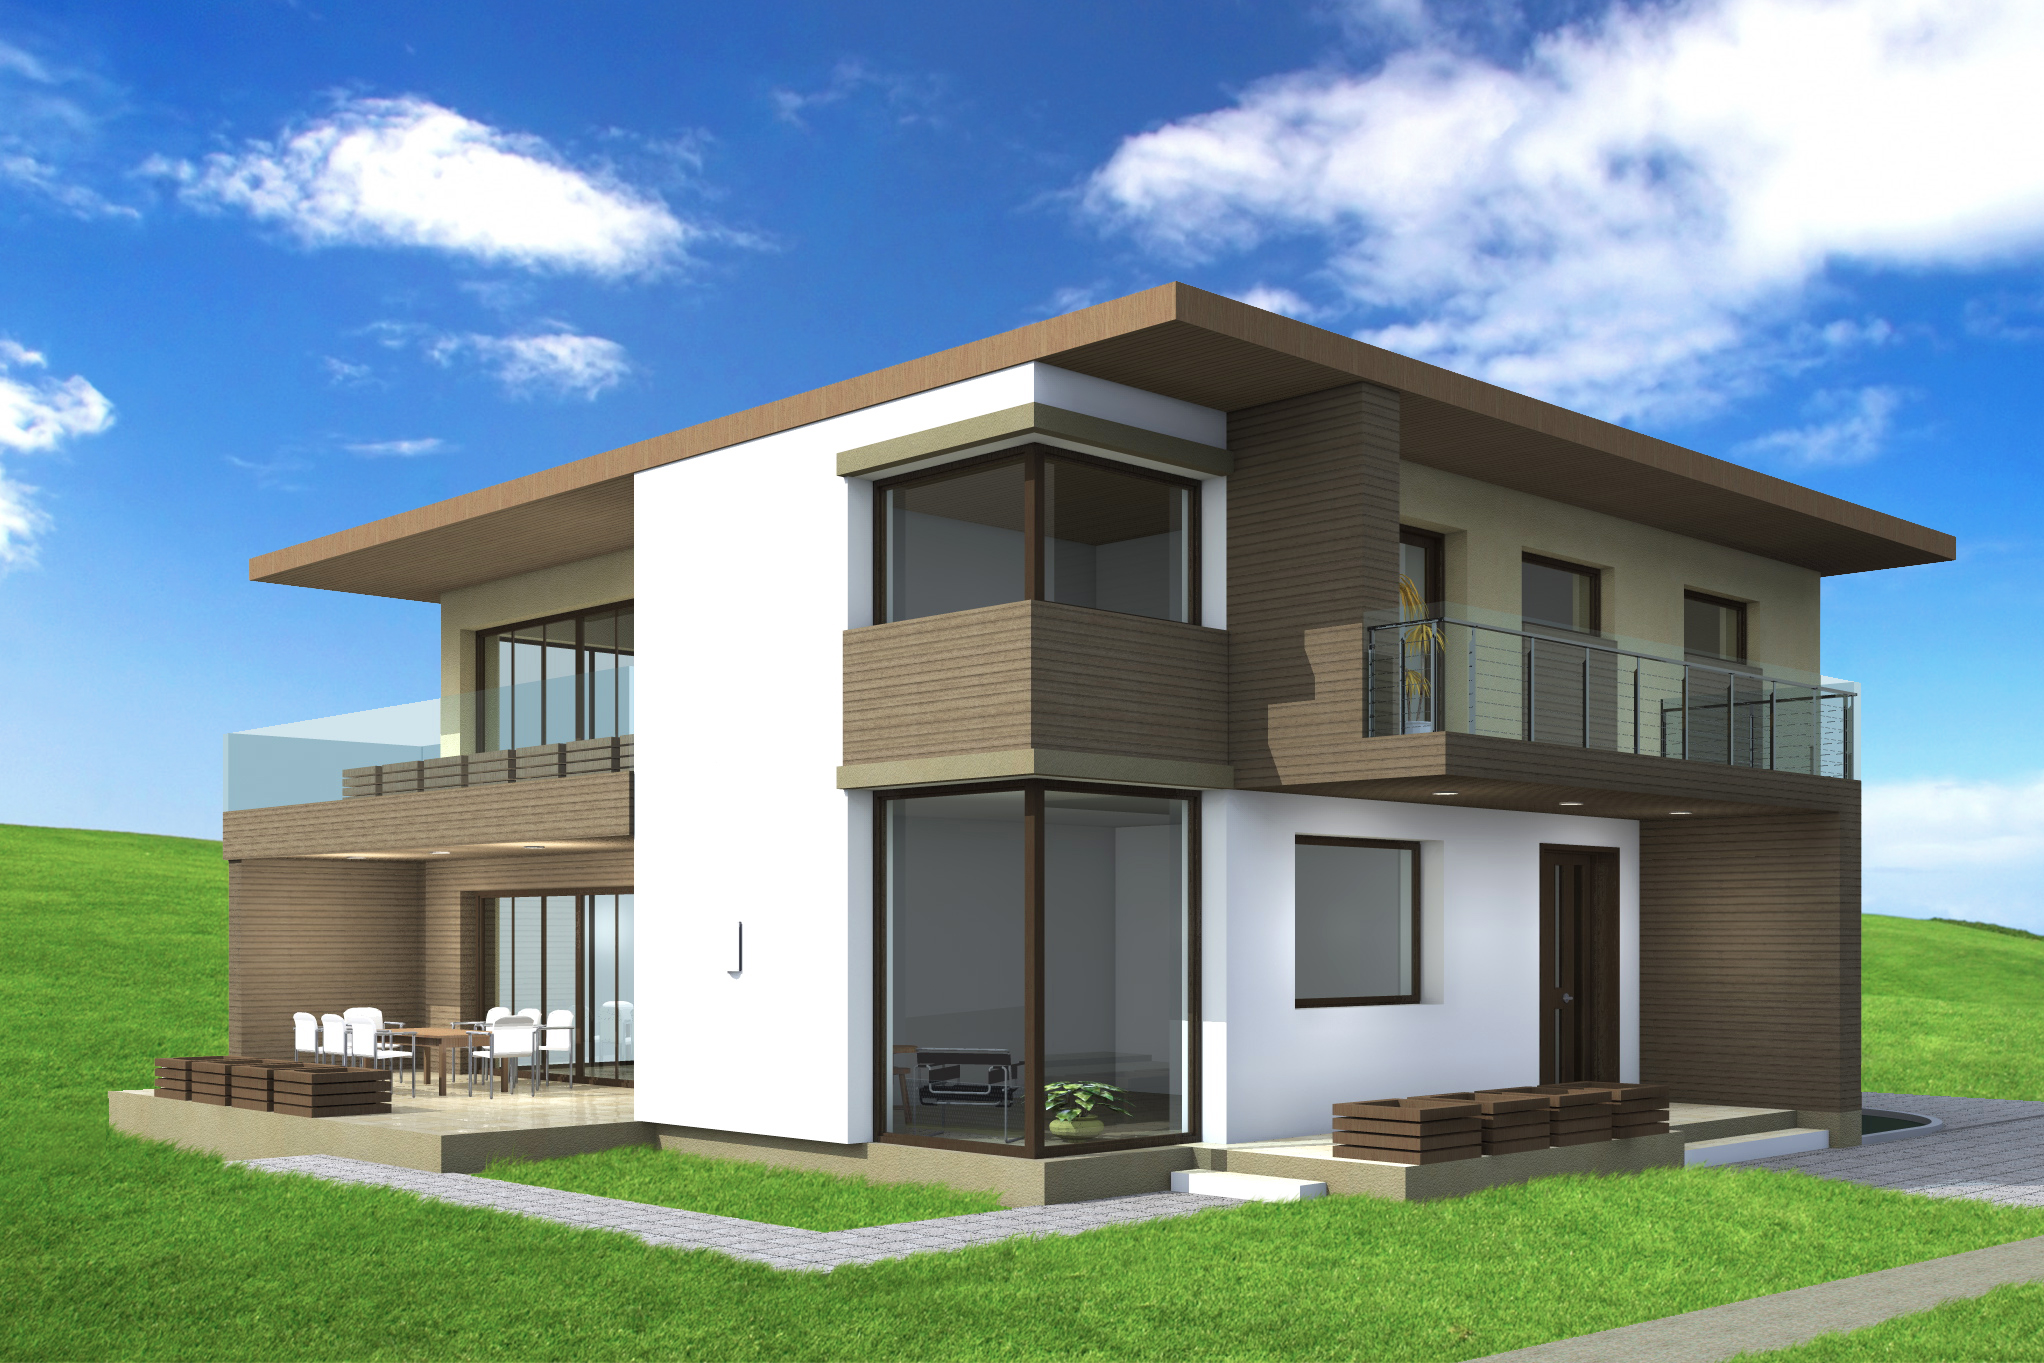 Plan maison contemporaine cj 5 190m2 for Style de maison contemporaine